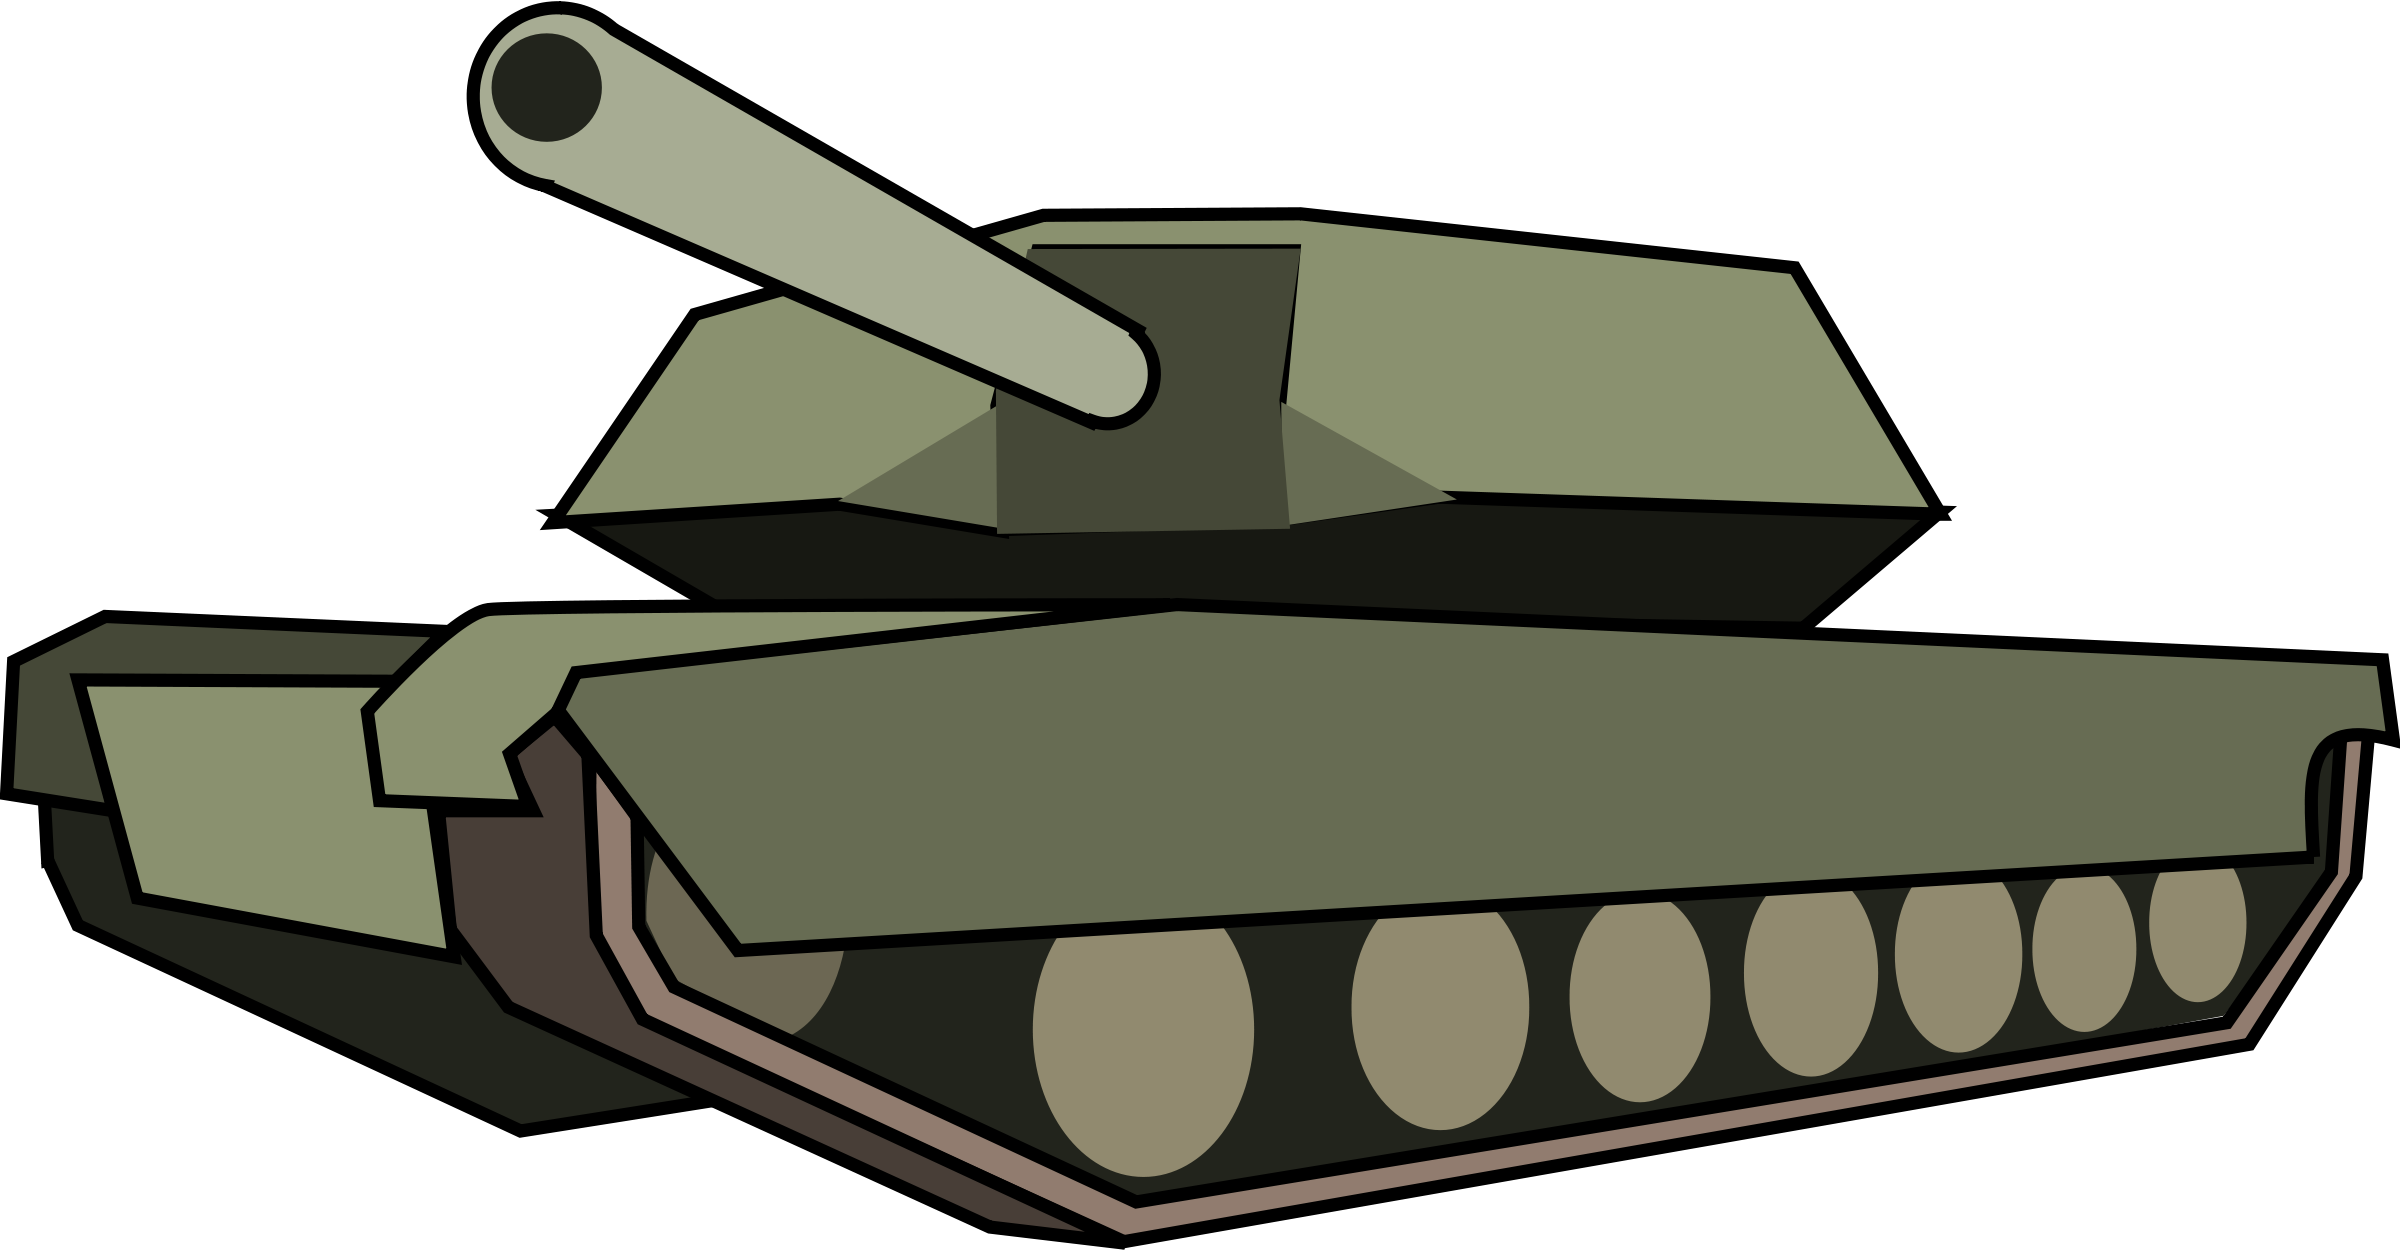 Army tank clipart free clip transparent library Tank Clip Art & Look At Clip Art Images - ClipartLook clip transparent library